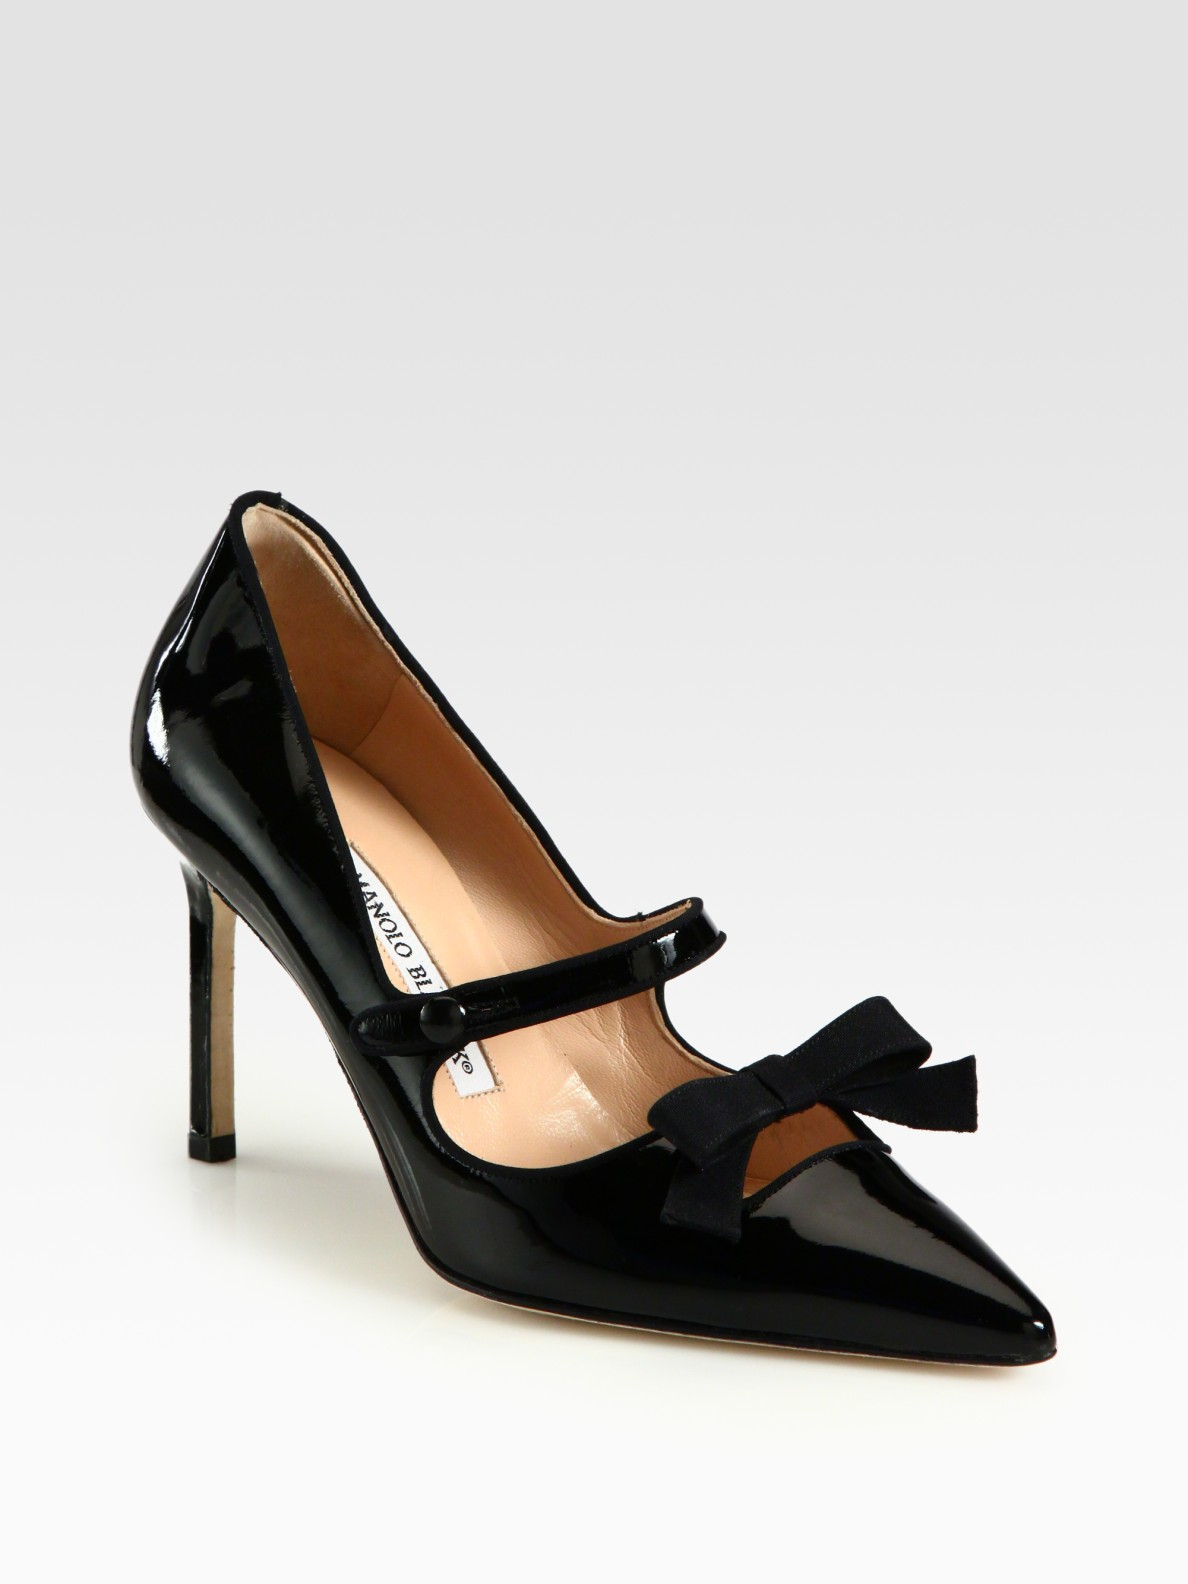 manolo blahnik patent leather mary jane bow pumps in black lyst. Black Bedroom Furniture Sets. Home Design Ideas